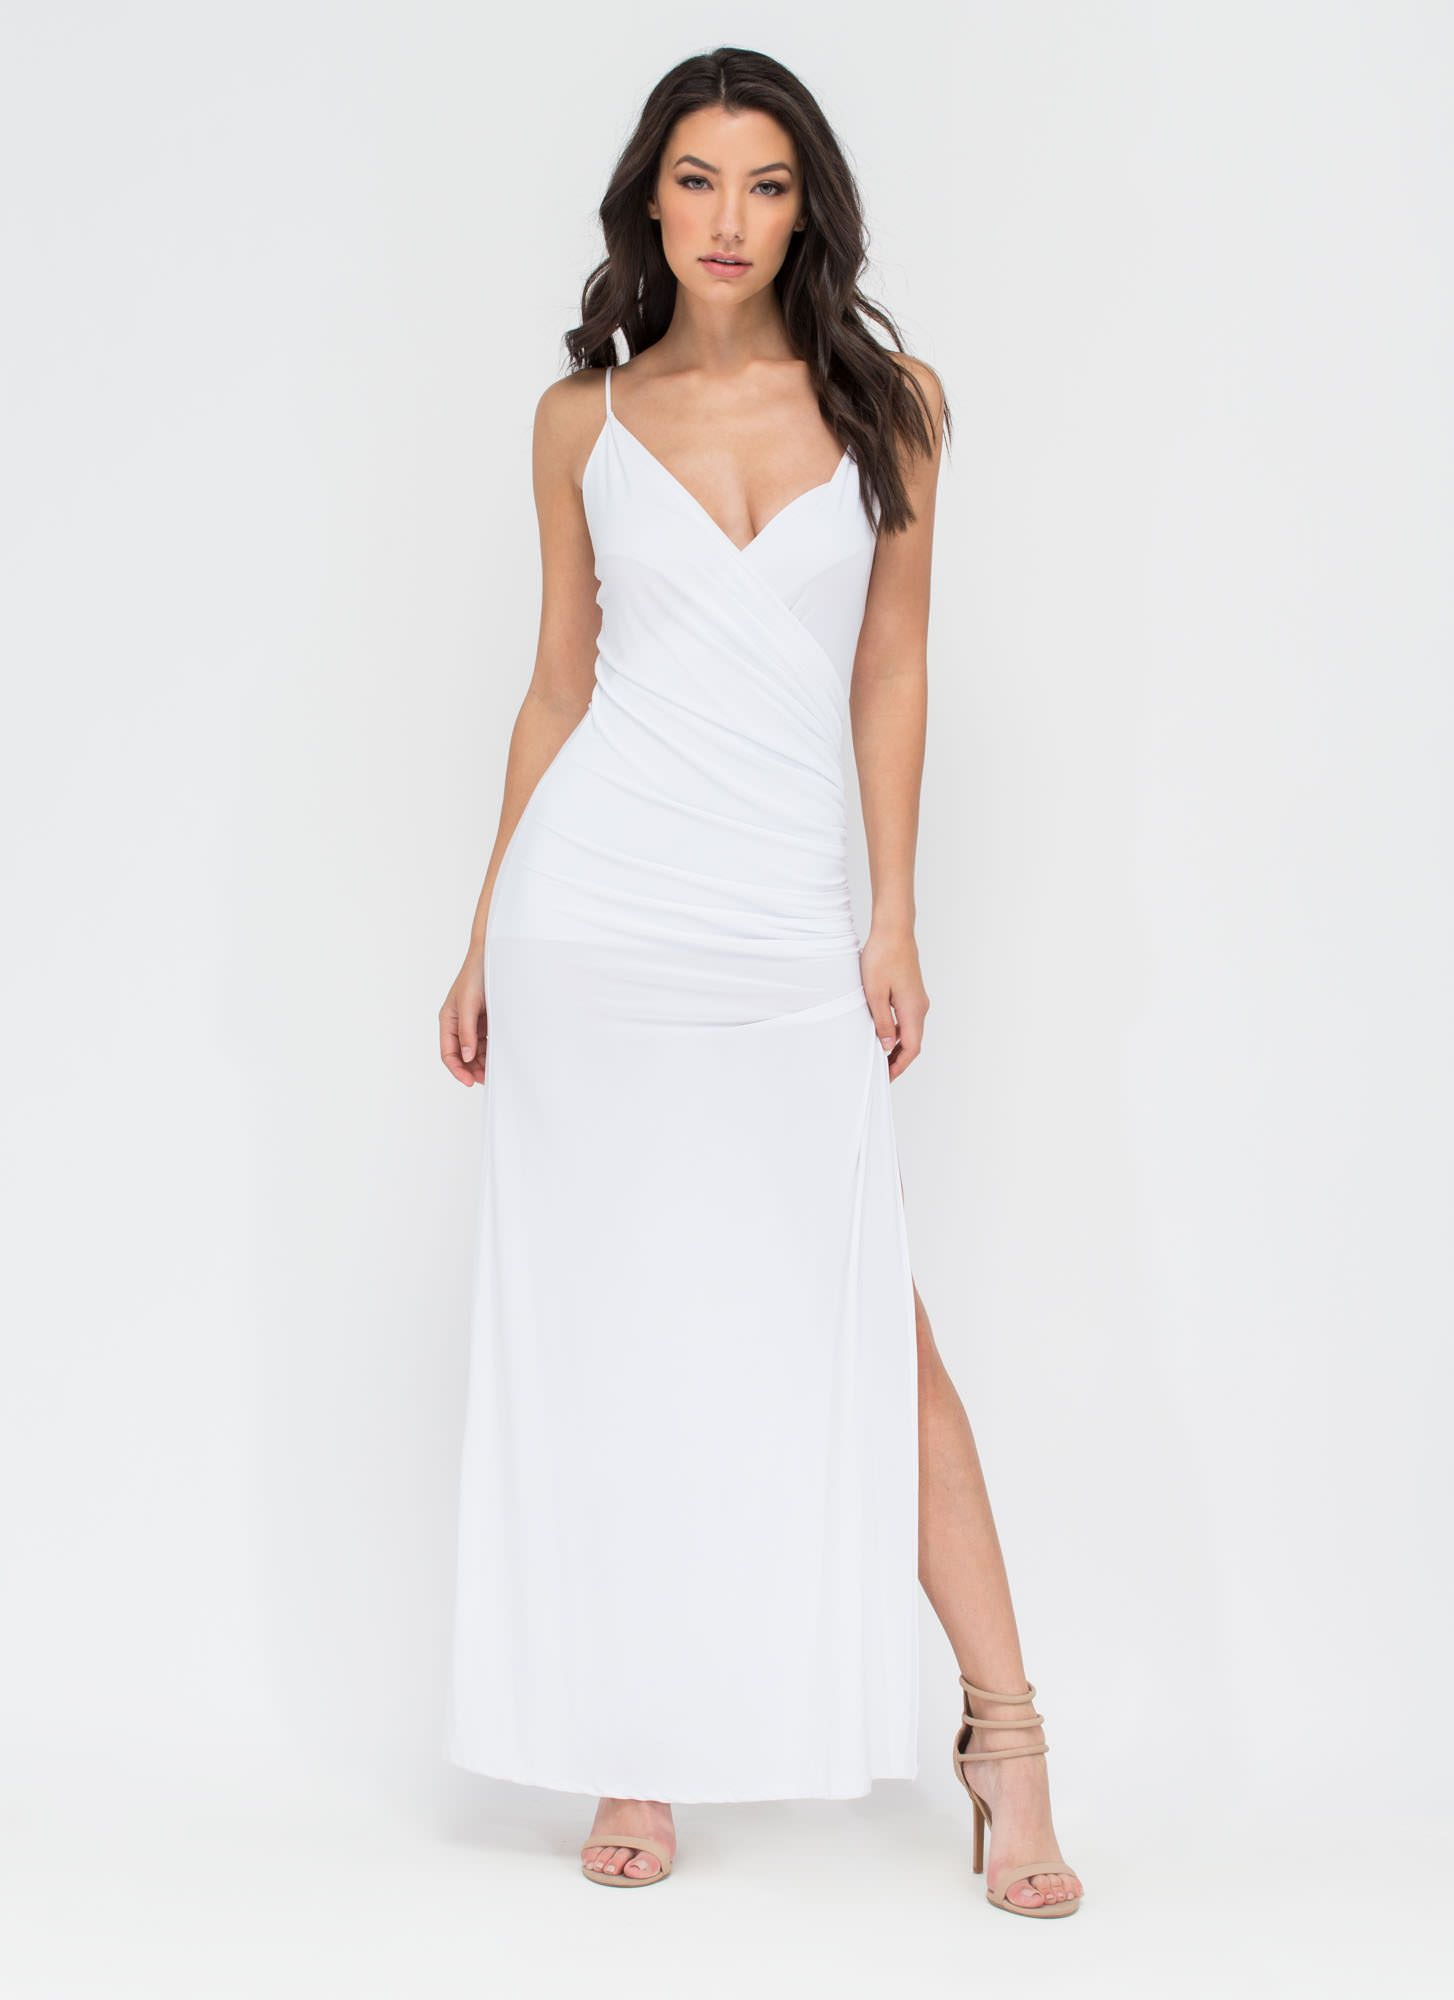 Special Occasion Dresses New Years Eve